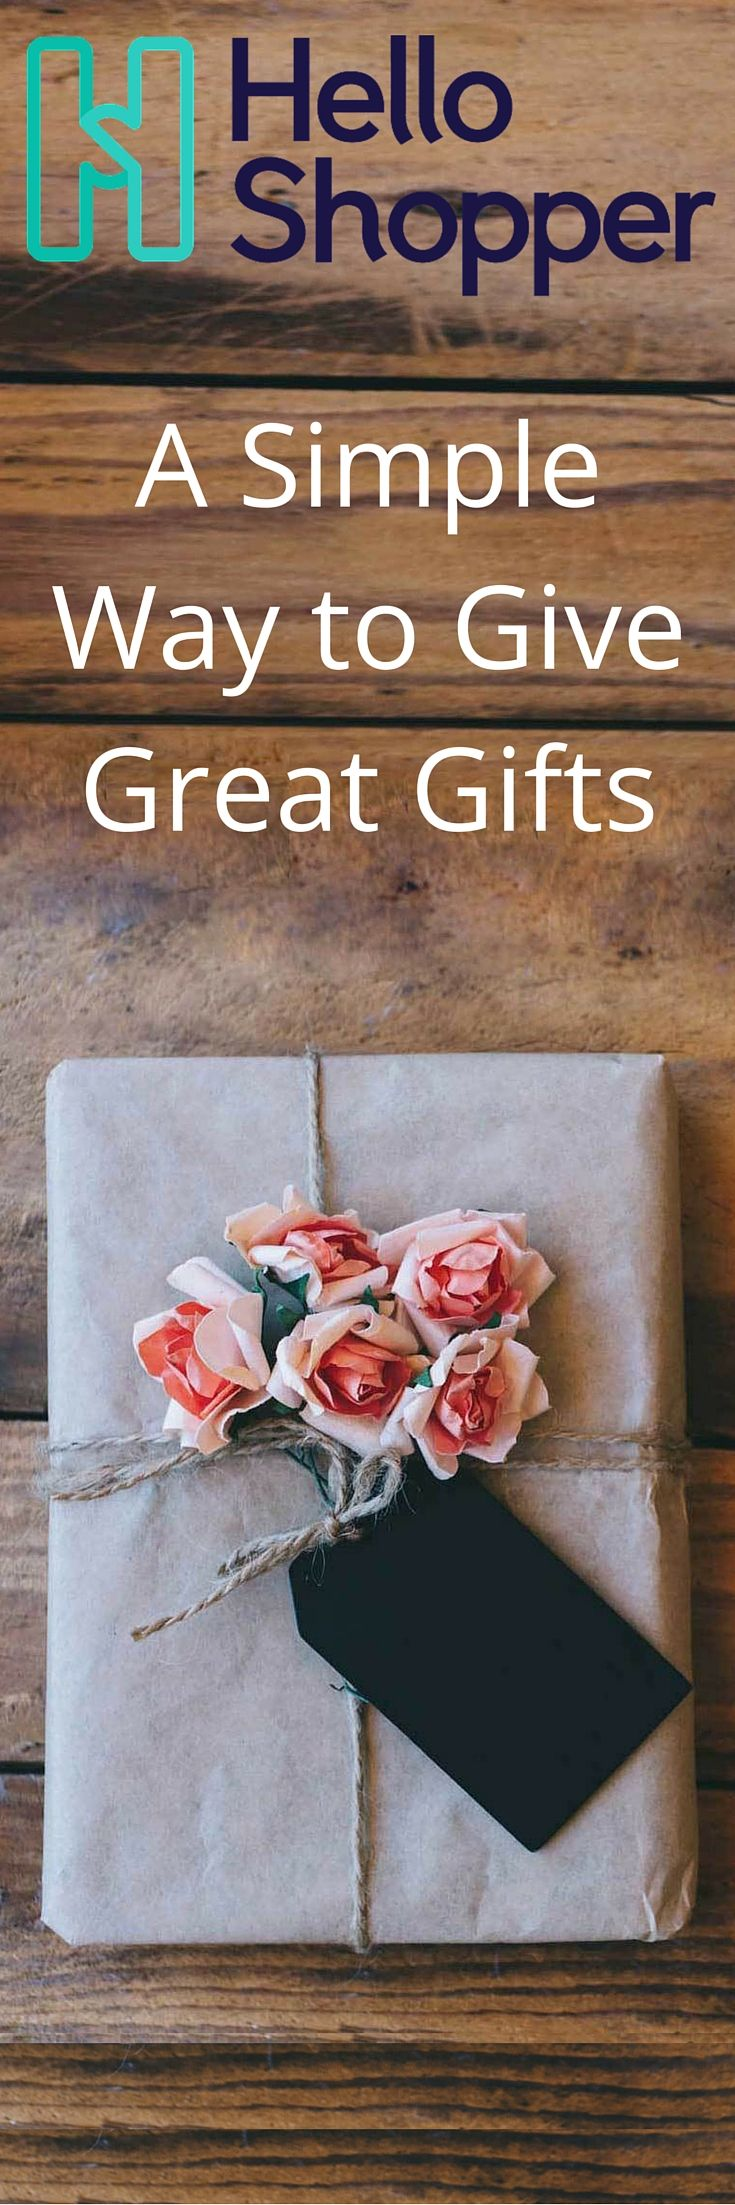 53 best helloshopper gift shoppers on demand images on pinterest get help discovering unique gift ideas your very own personal shopper will send you custom izmirmasajfo